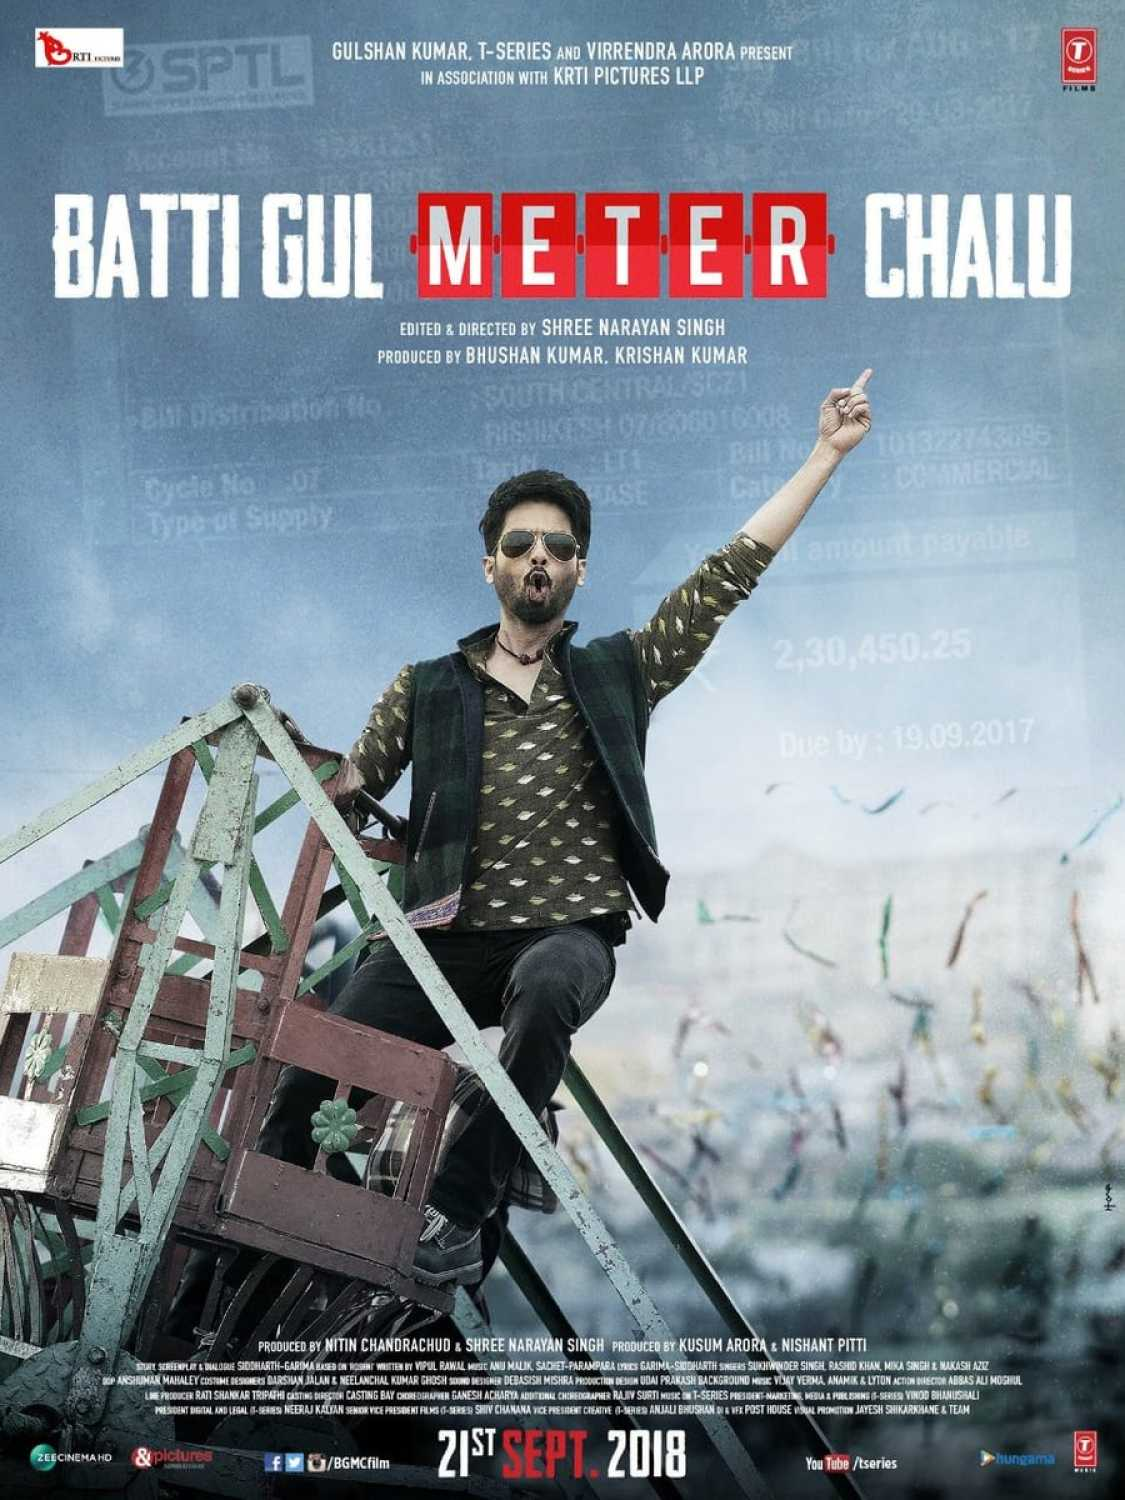 Batti Gul Meter Chalu Movie Dialogue Poster Shahid Kapoor